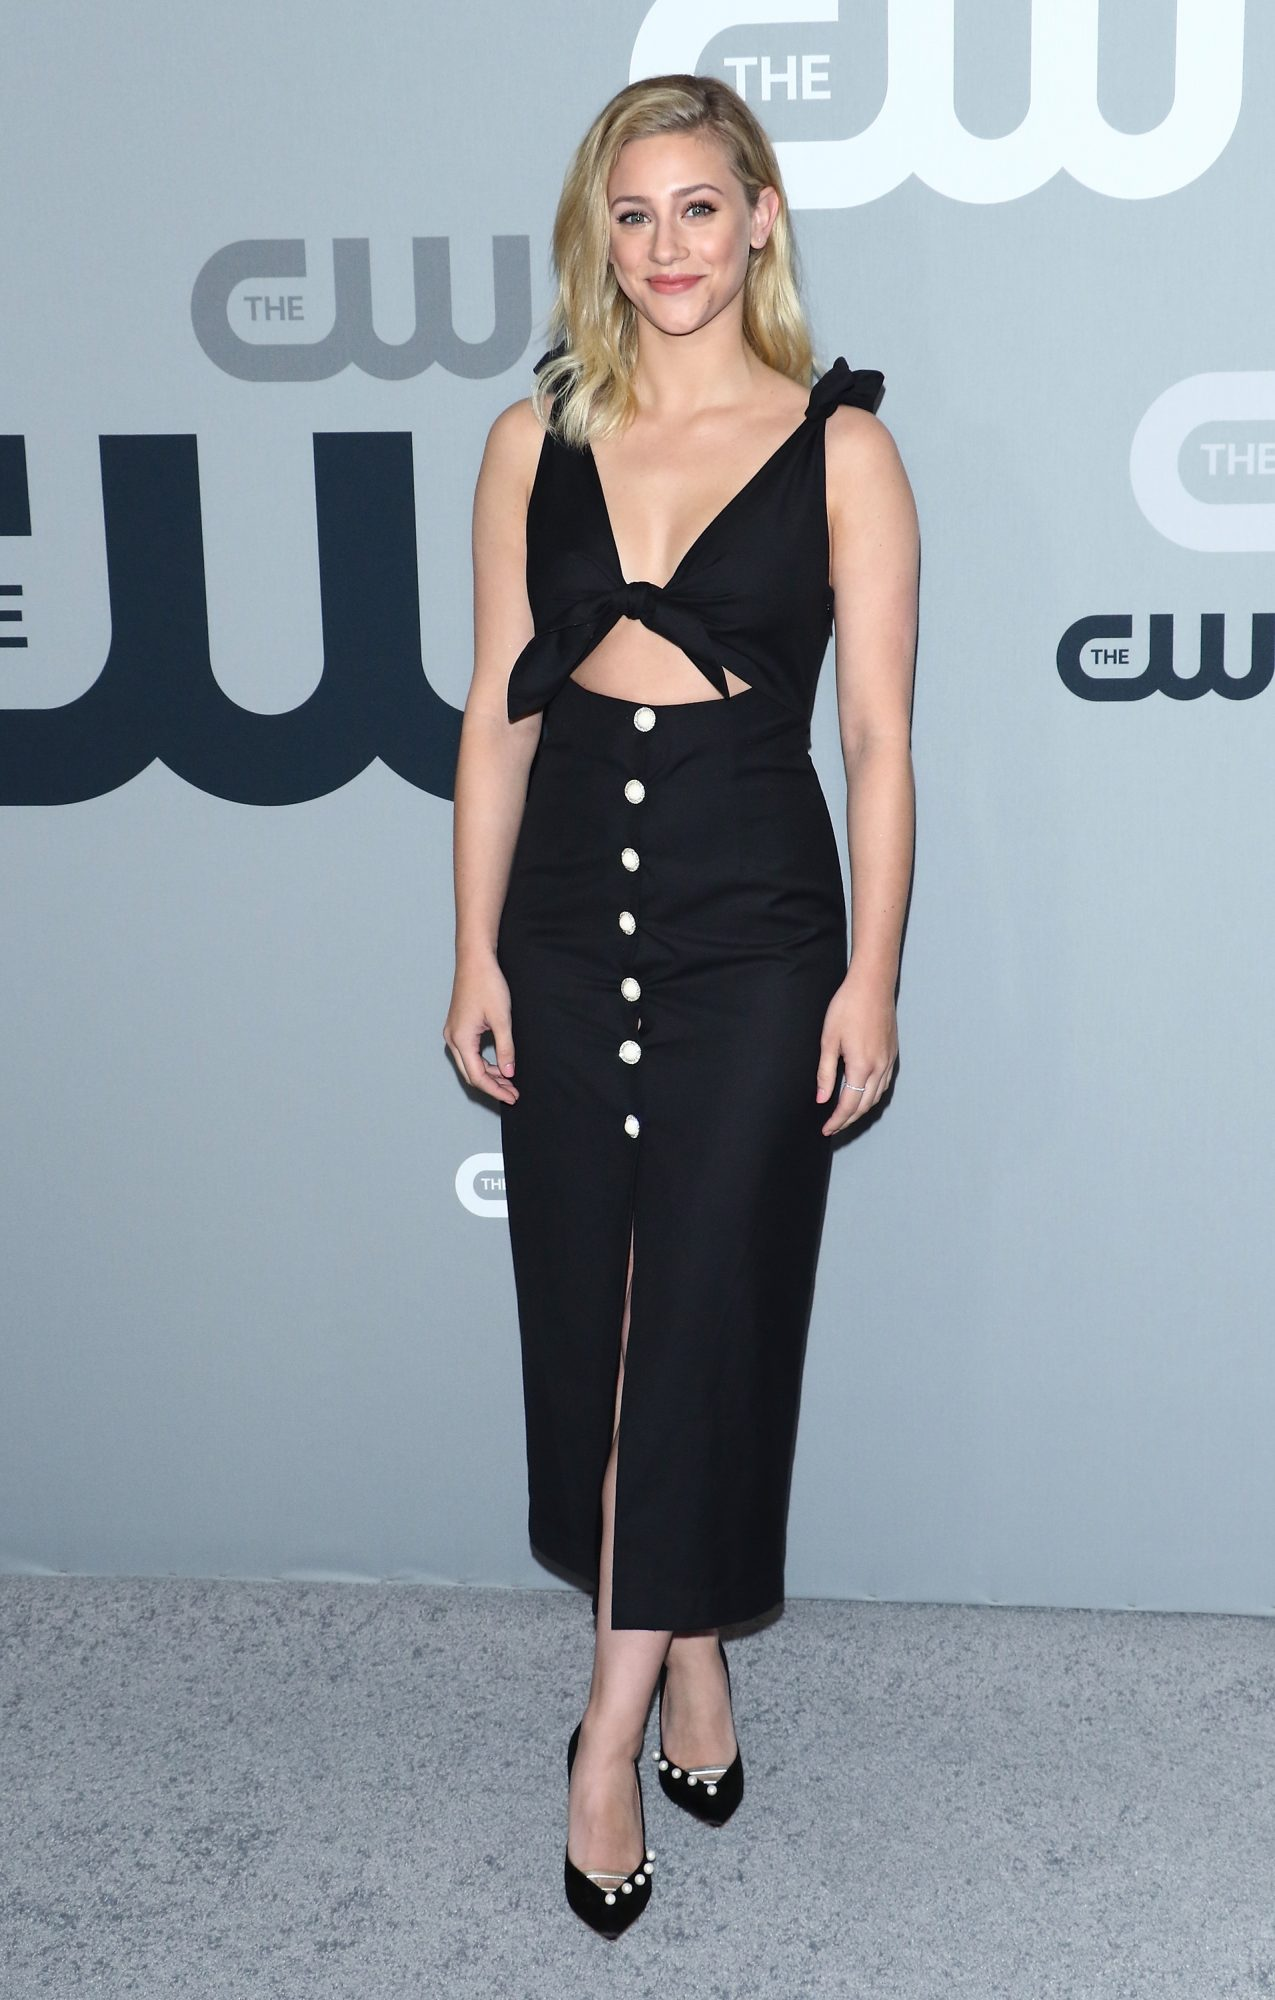 Lili Reinhart Responds to Pregnancy Rumors: I 'Will Never Apologize' for 'My Body'